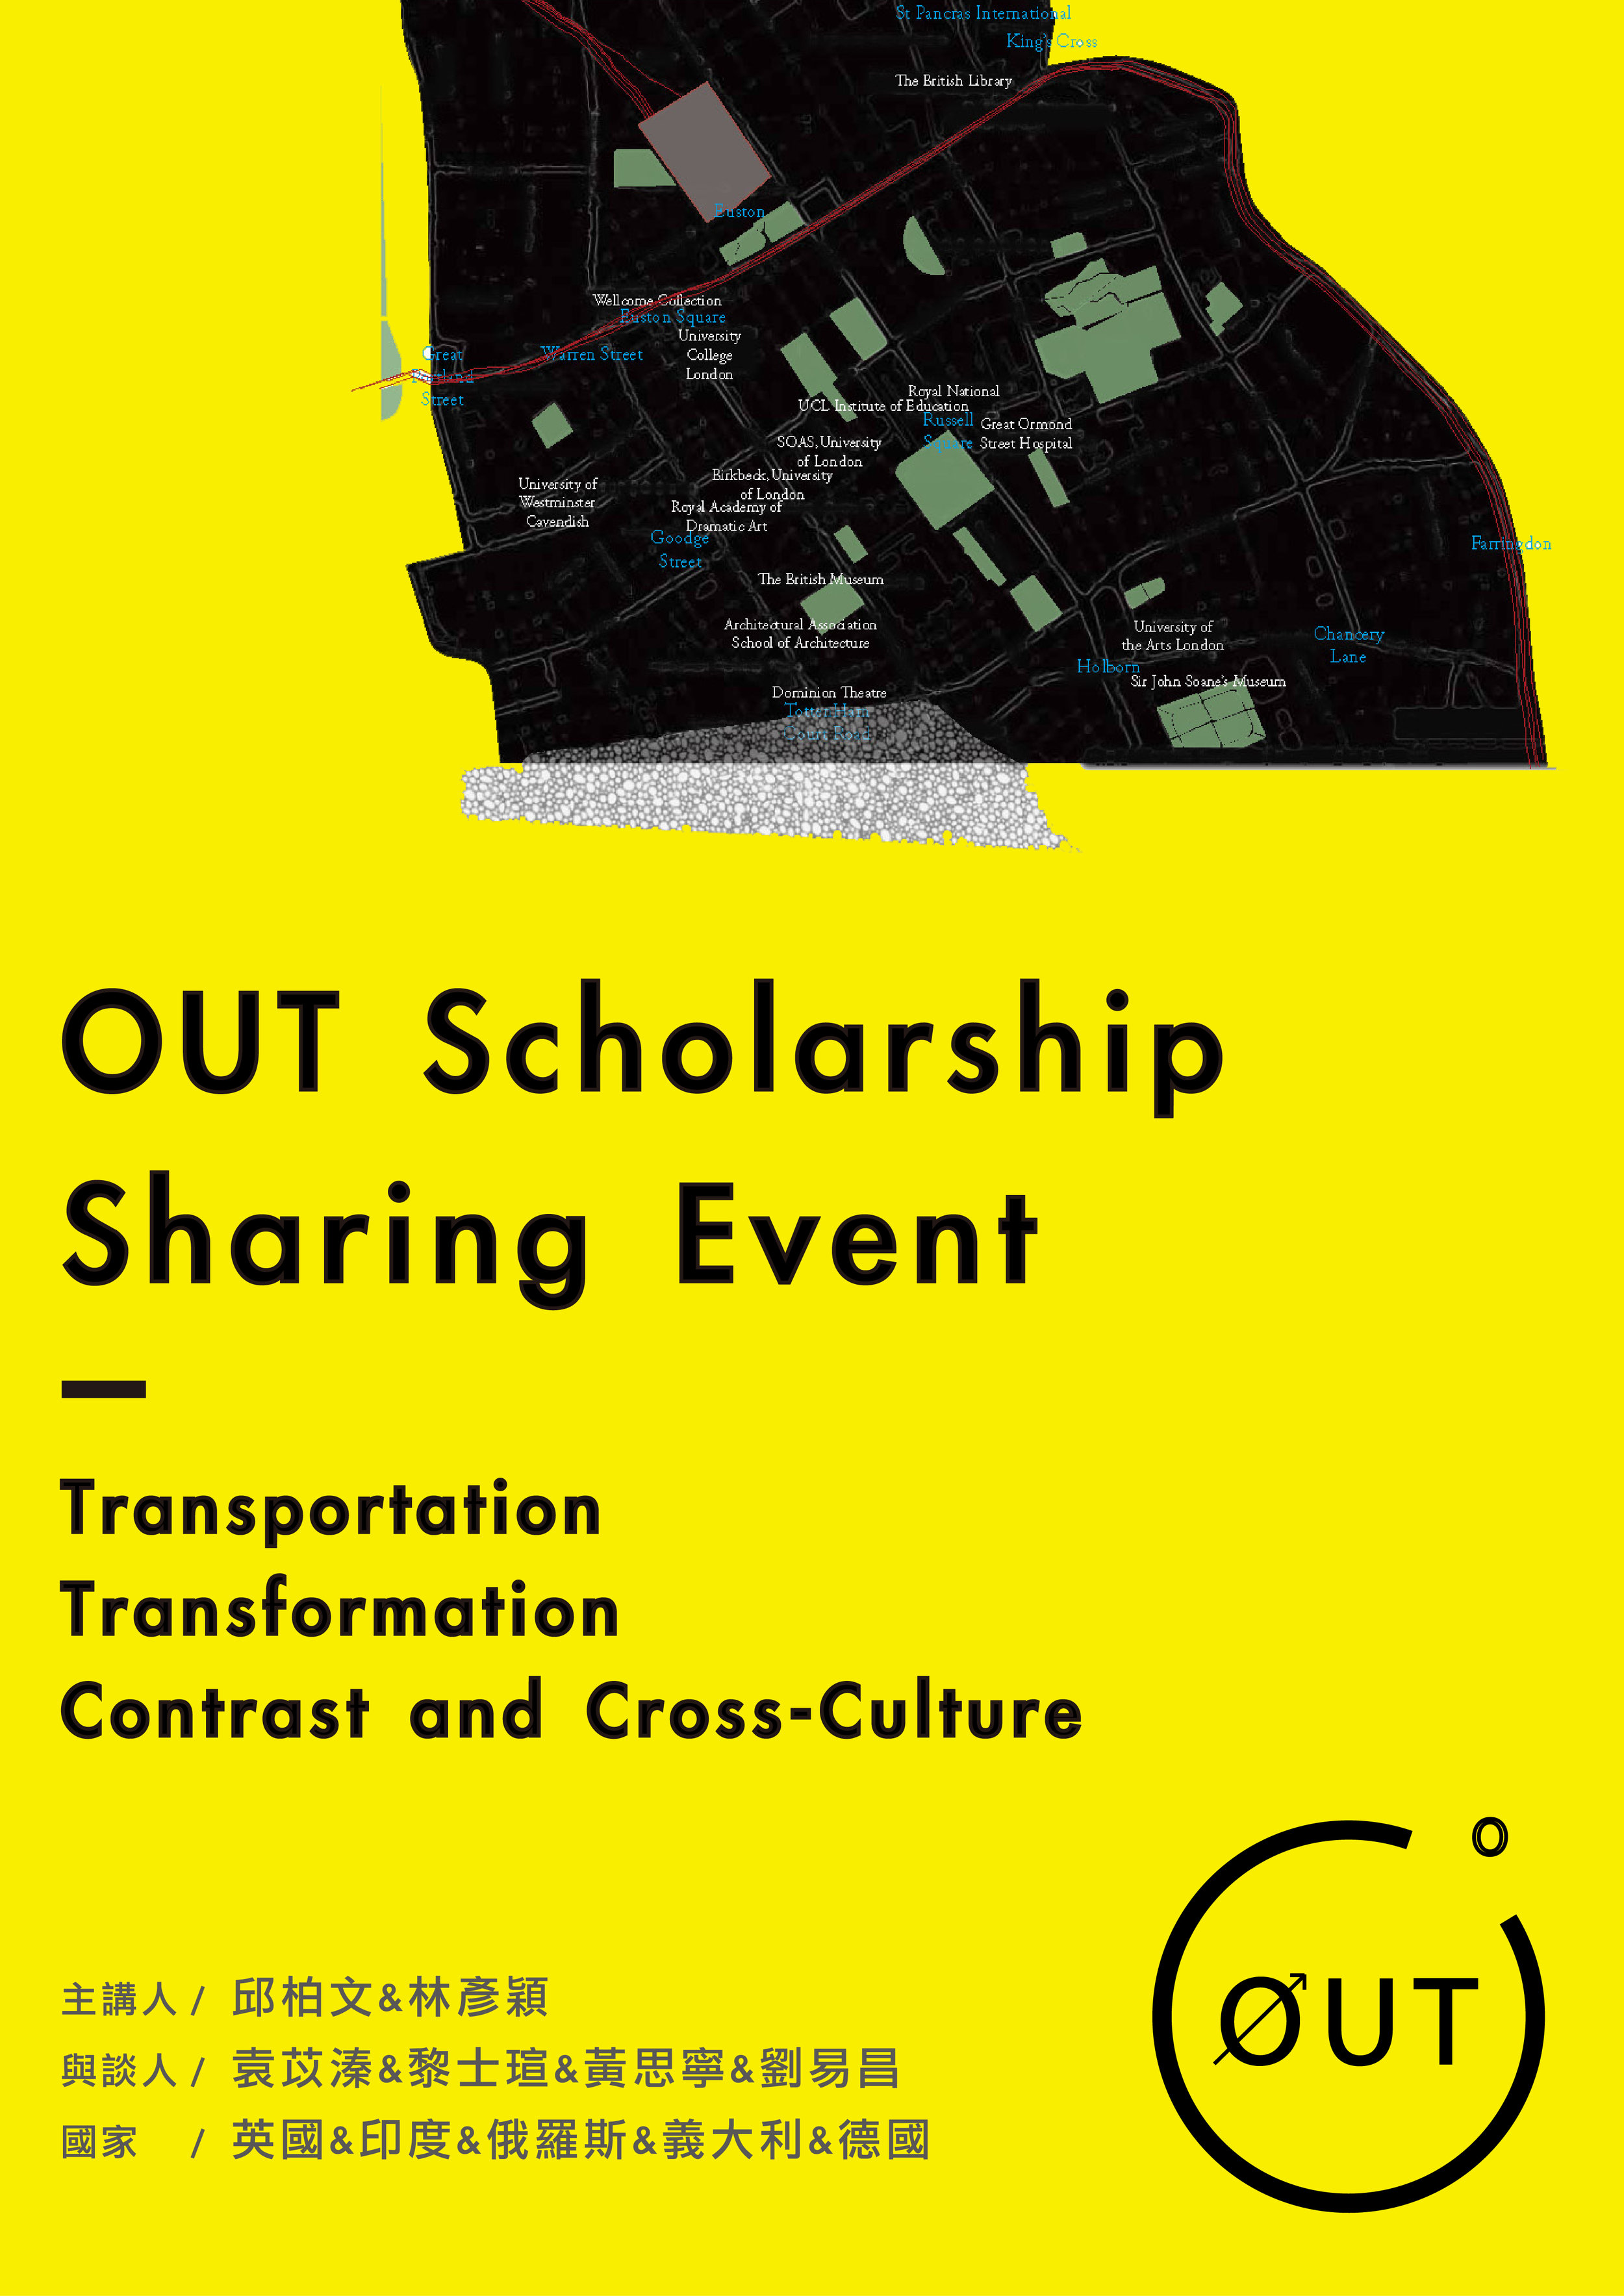 OUT_poster_1205-03.jpg